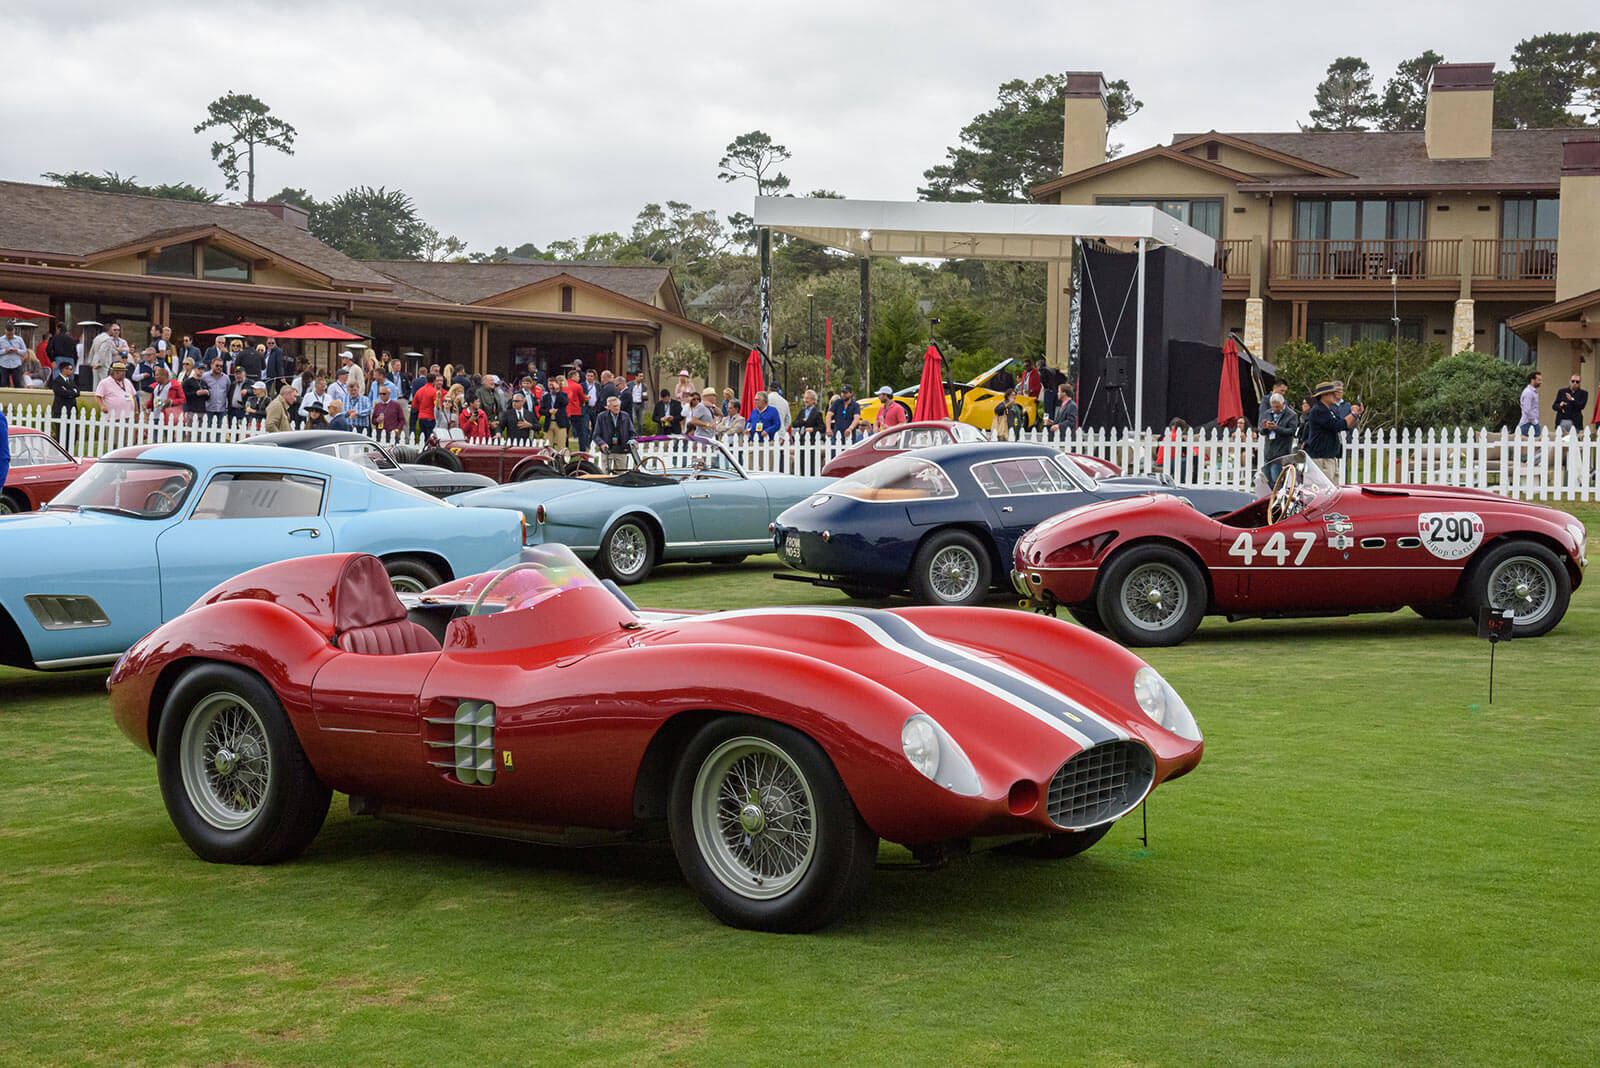 Ferrari display at Pebble Beach Concours d'Elegance